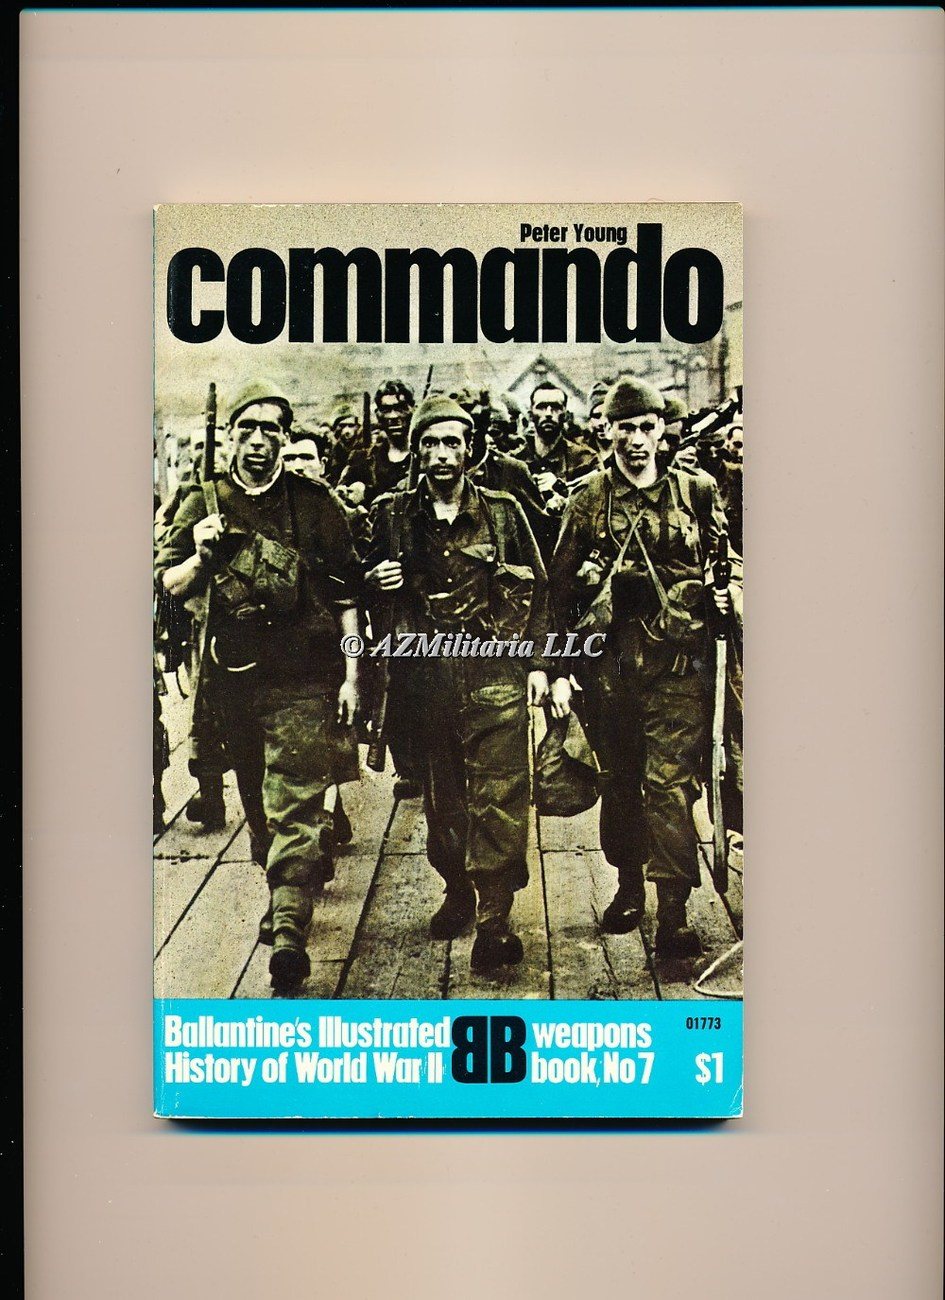 Commando (Weapons Book, No 7)